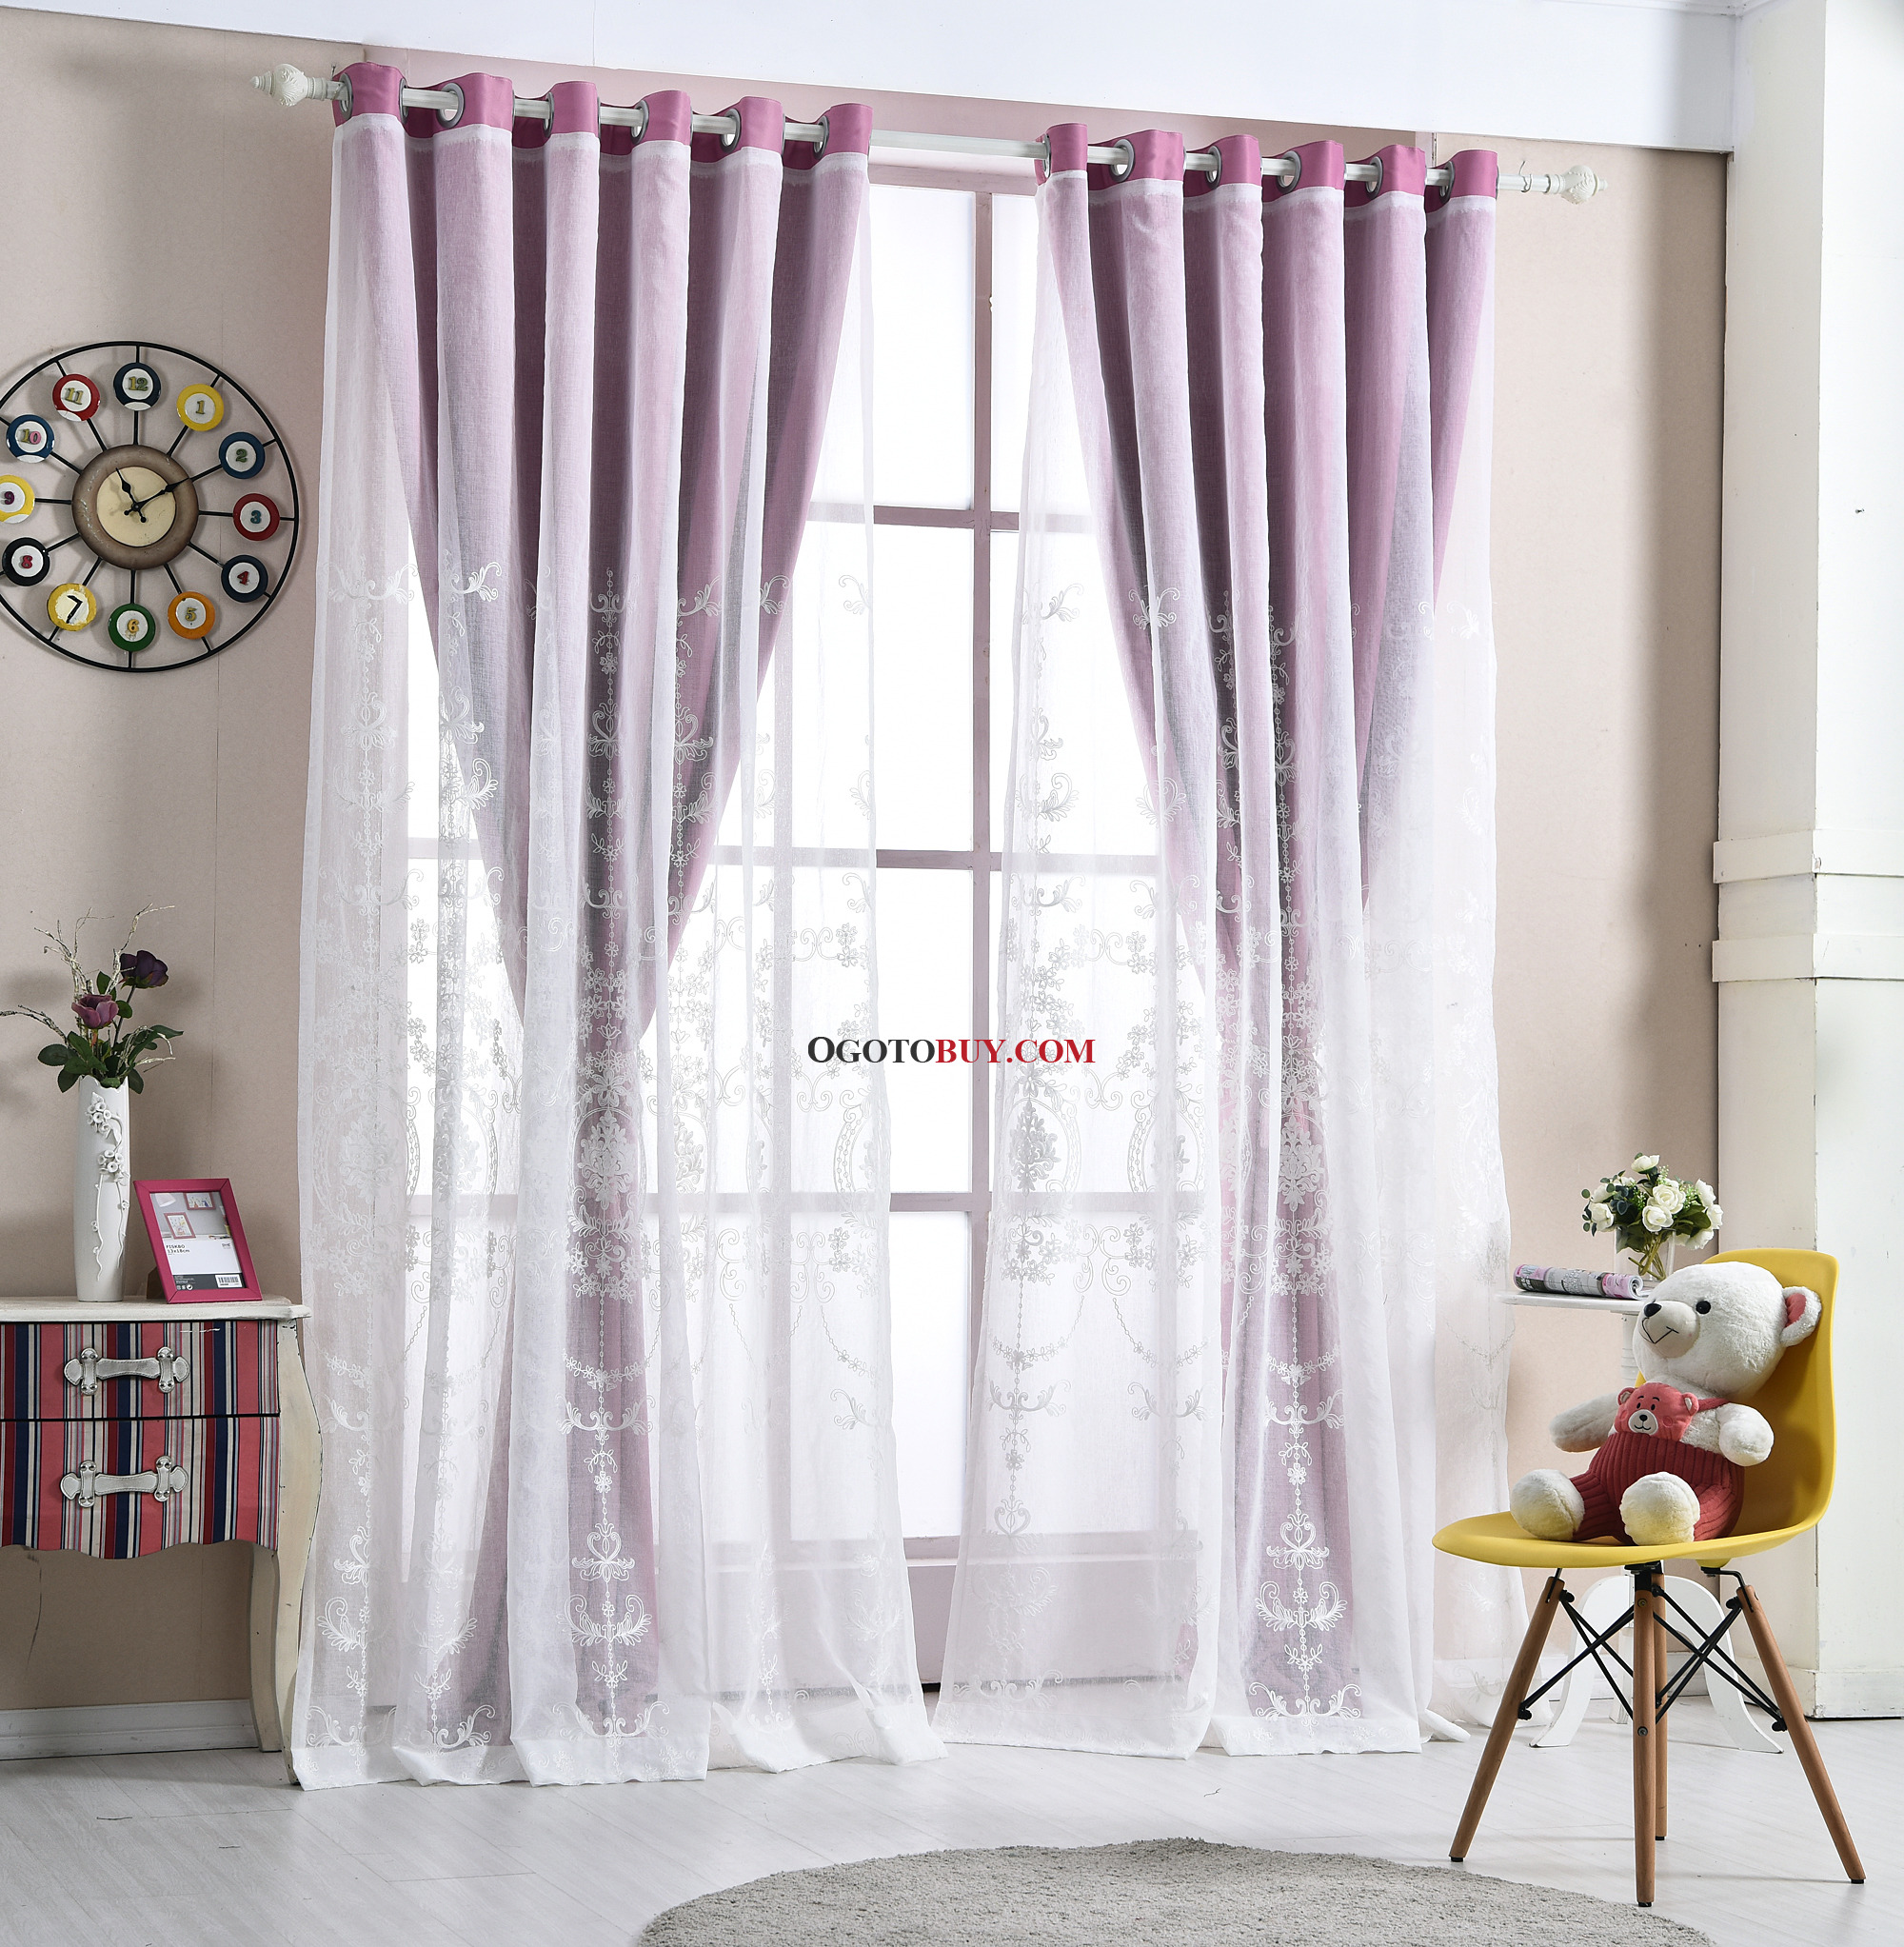 ... Curtains For Bedroom On Sale. Loading Zoom Good Ideas